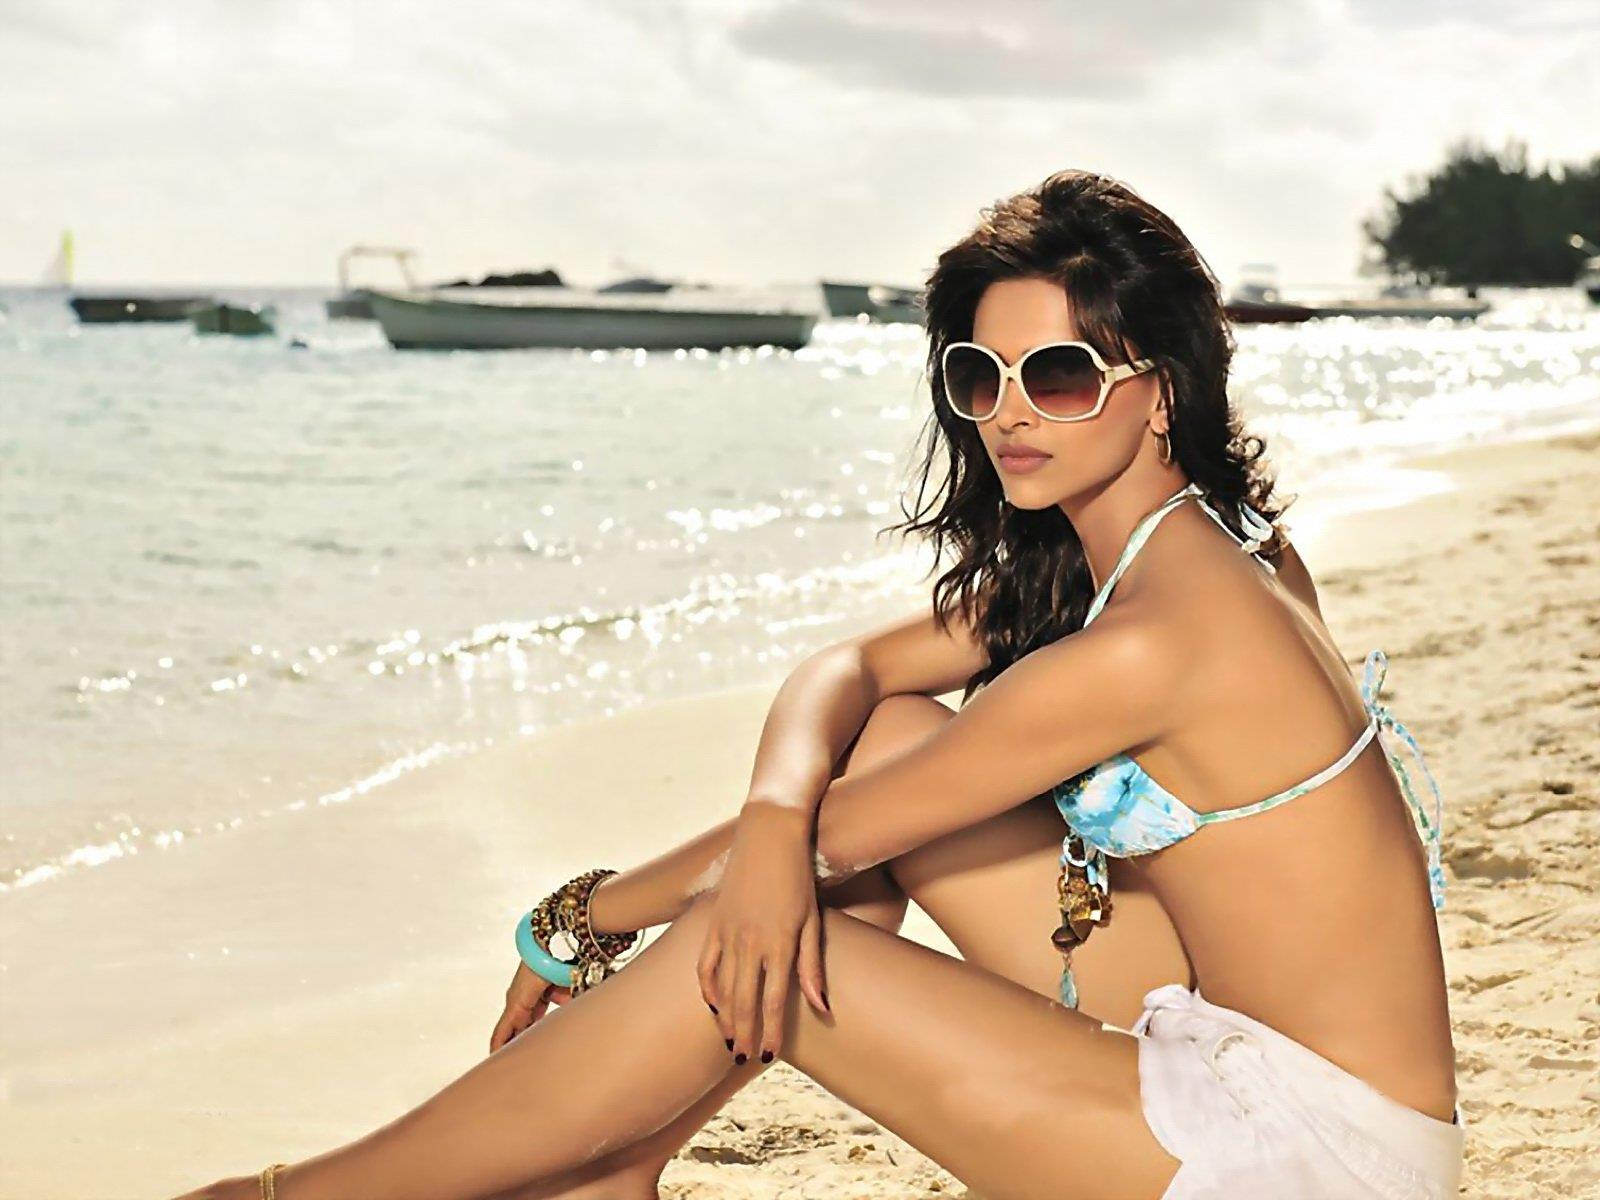 deepika-padukone-beach-outfit Bollywood Celebrities Beach Outfits-25 Indian Actress Beachwear